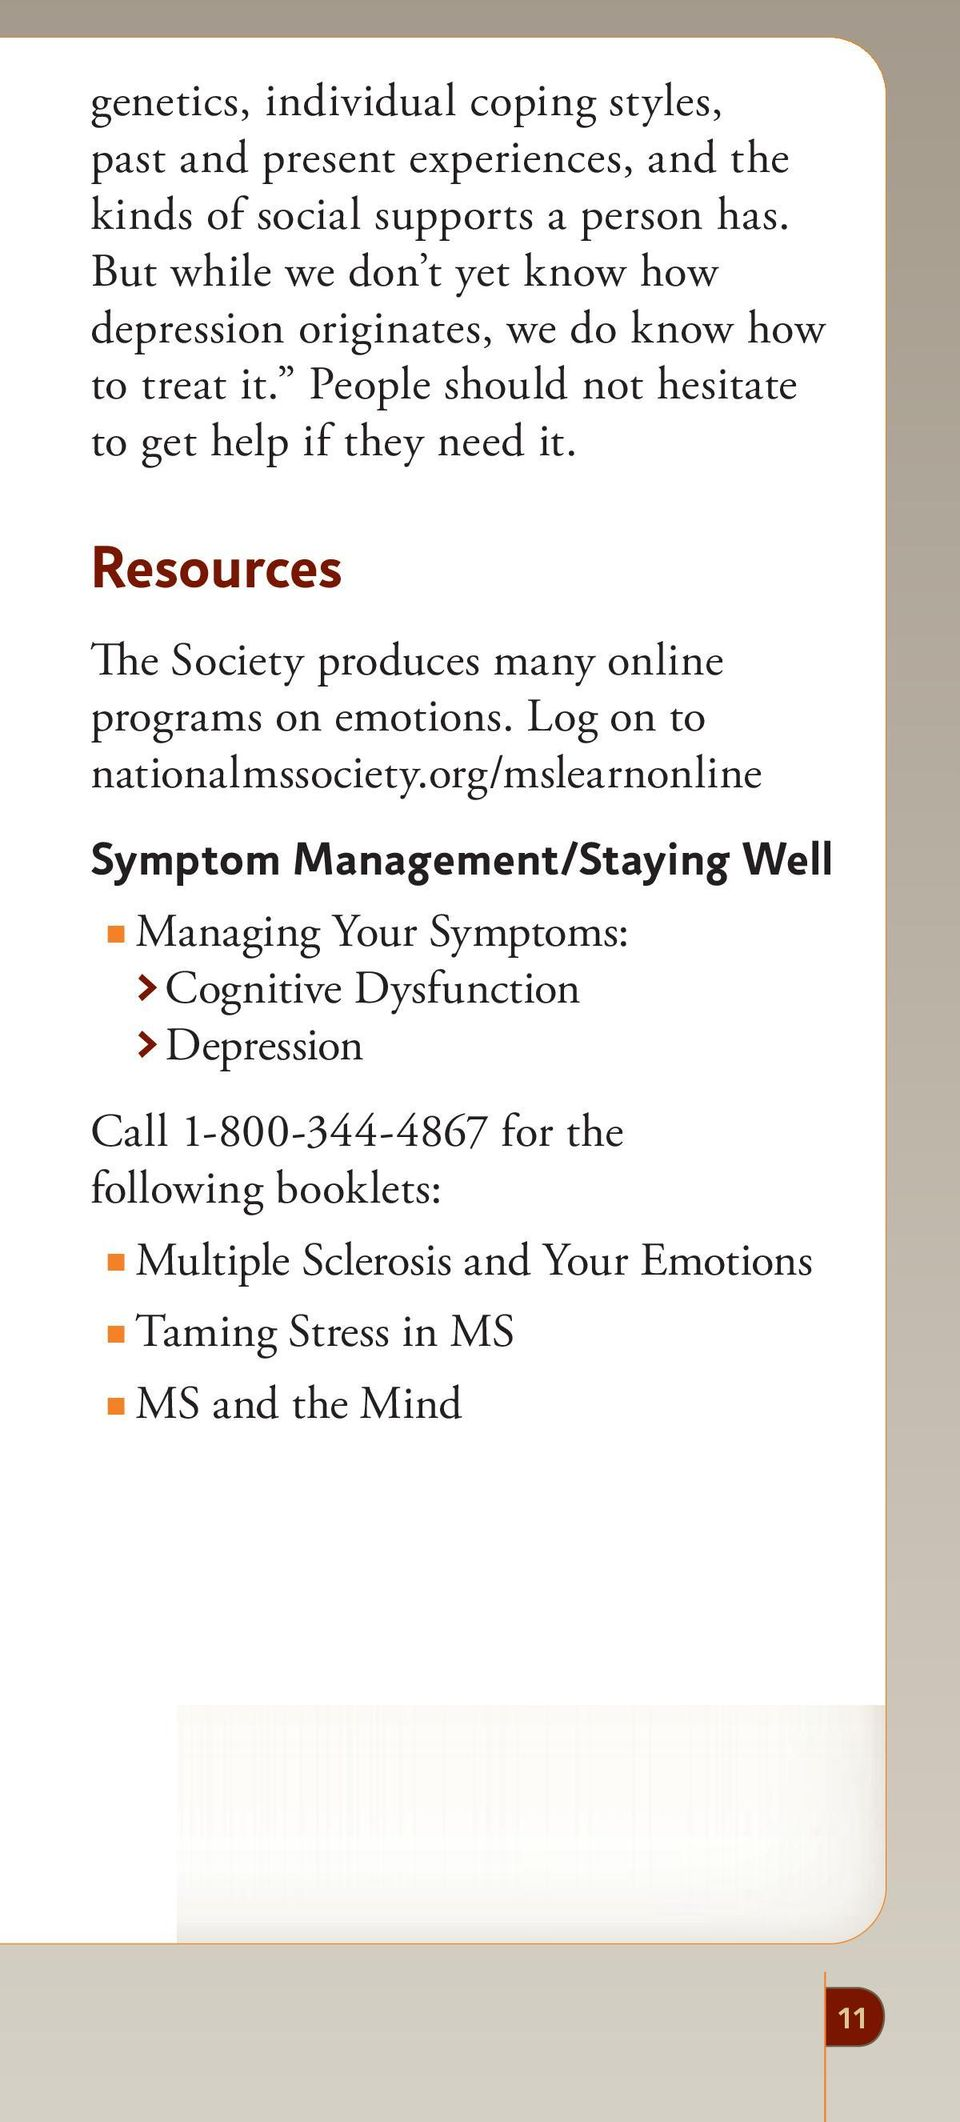 Resources The Society produces many online programs on emotions. Log on to nationalmssociety.